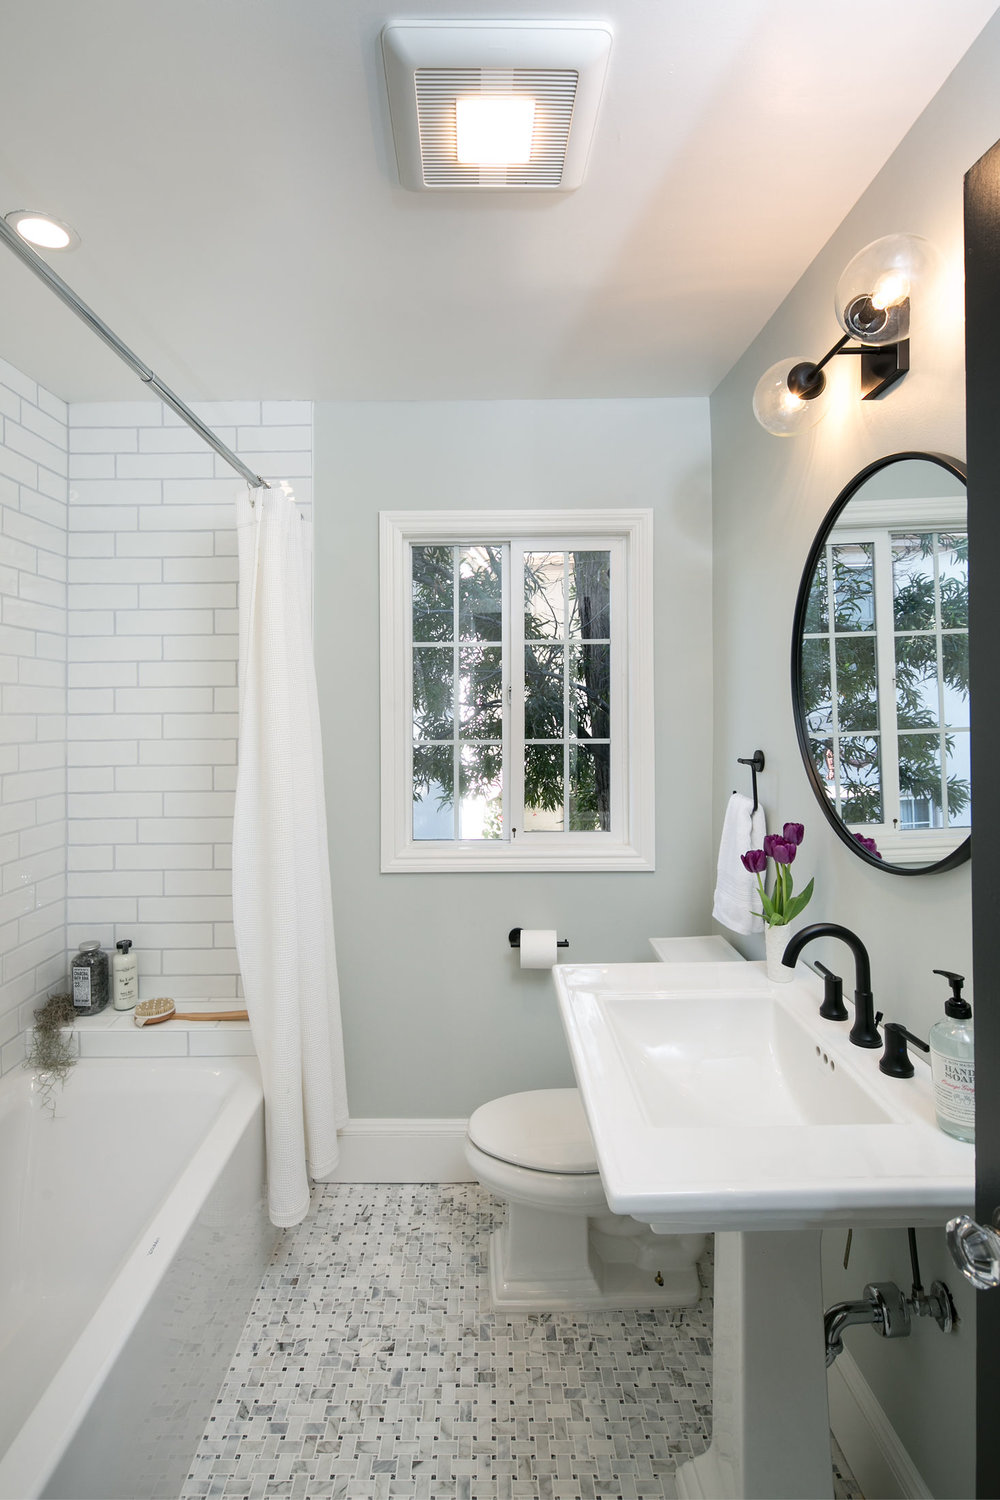 Crocker Highlands Modern Mediterranean Bathroom Renovation, Interior Design and Staging- after